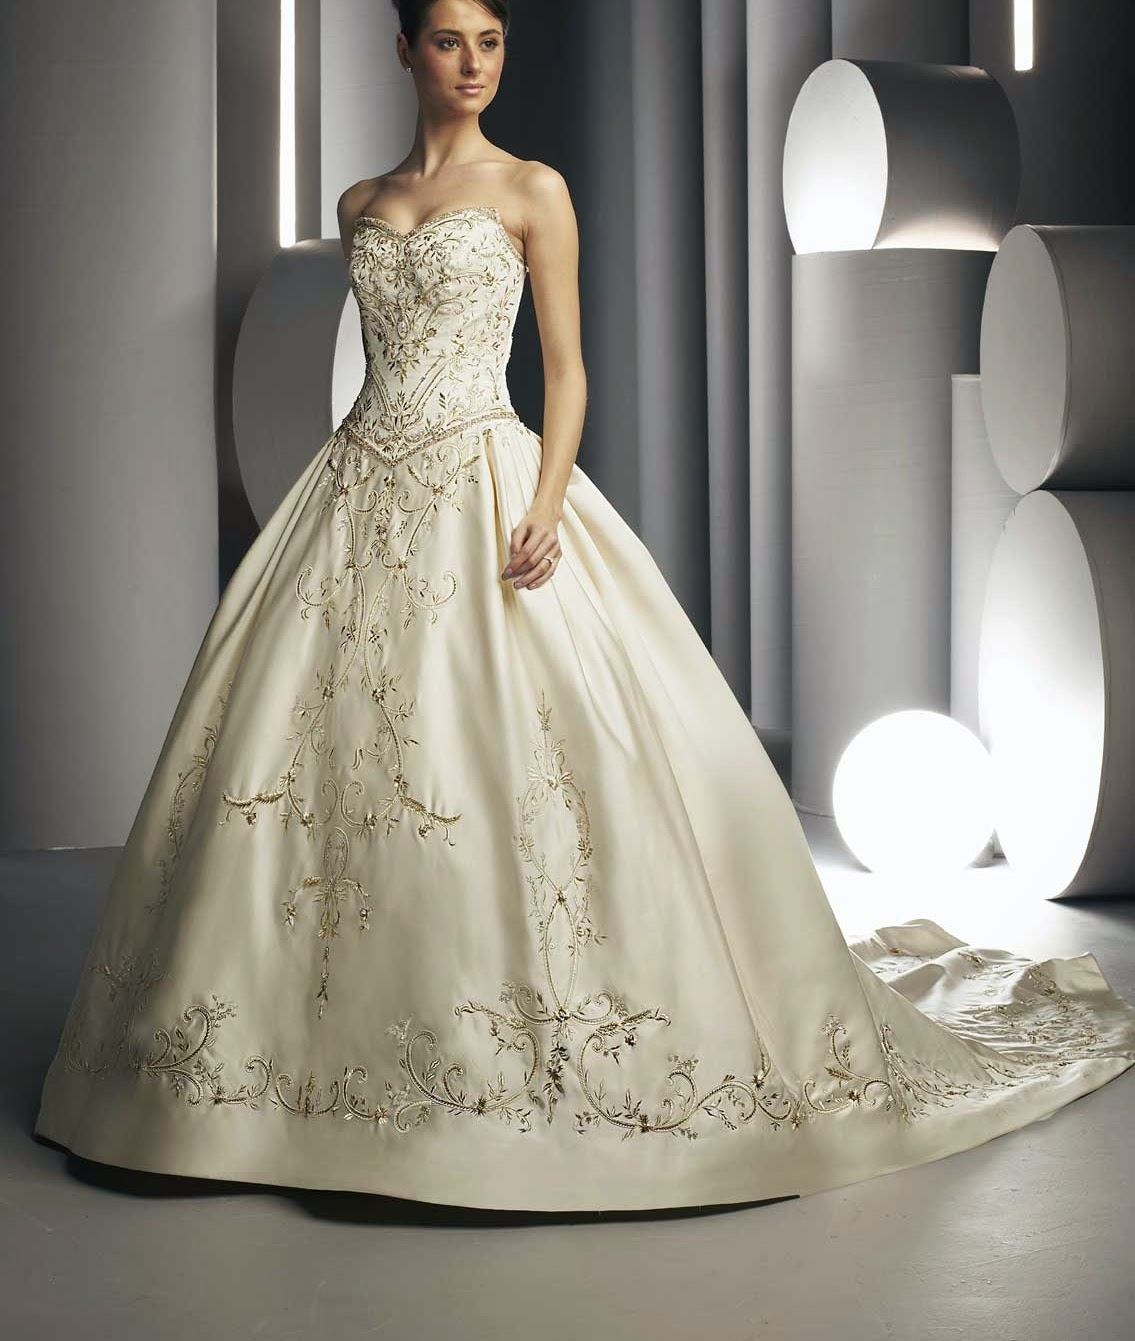 Champagne Wedding Dress: Wedding & Event Planning. Destination Wedding Specialist